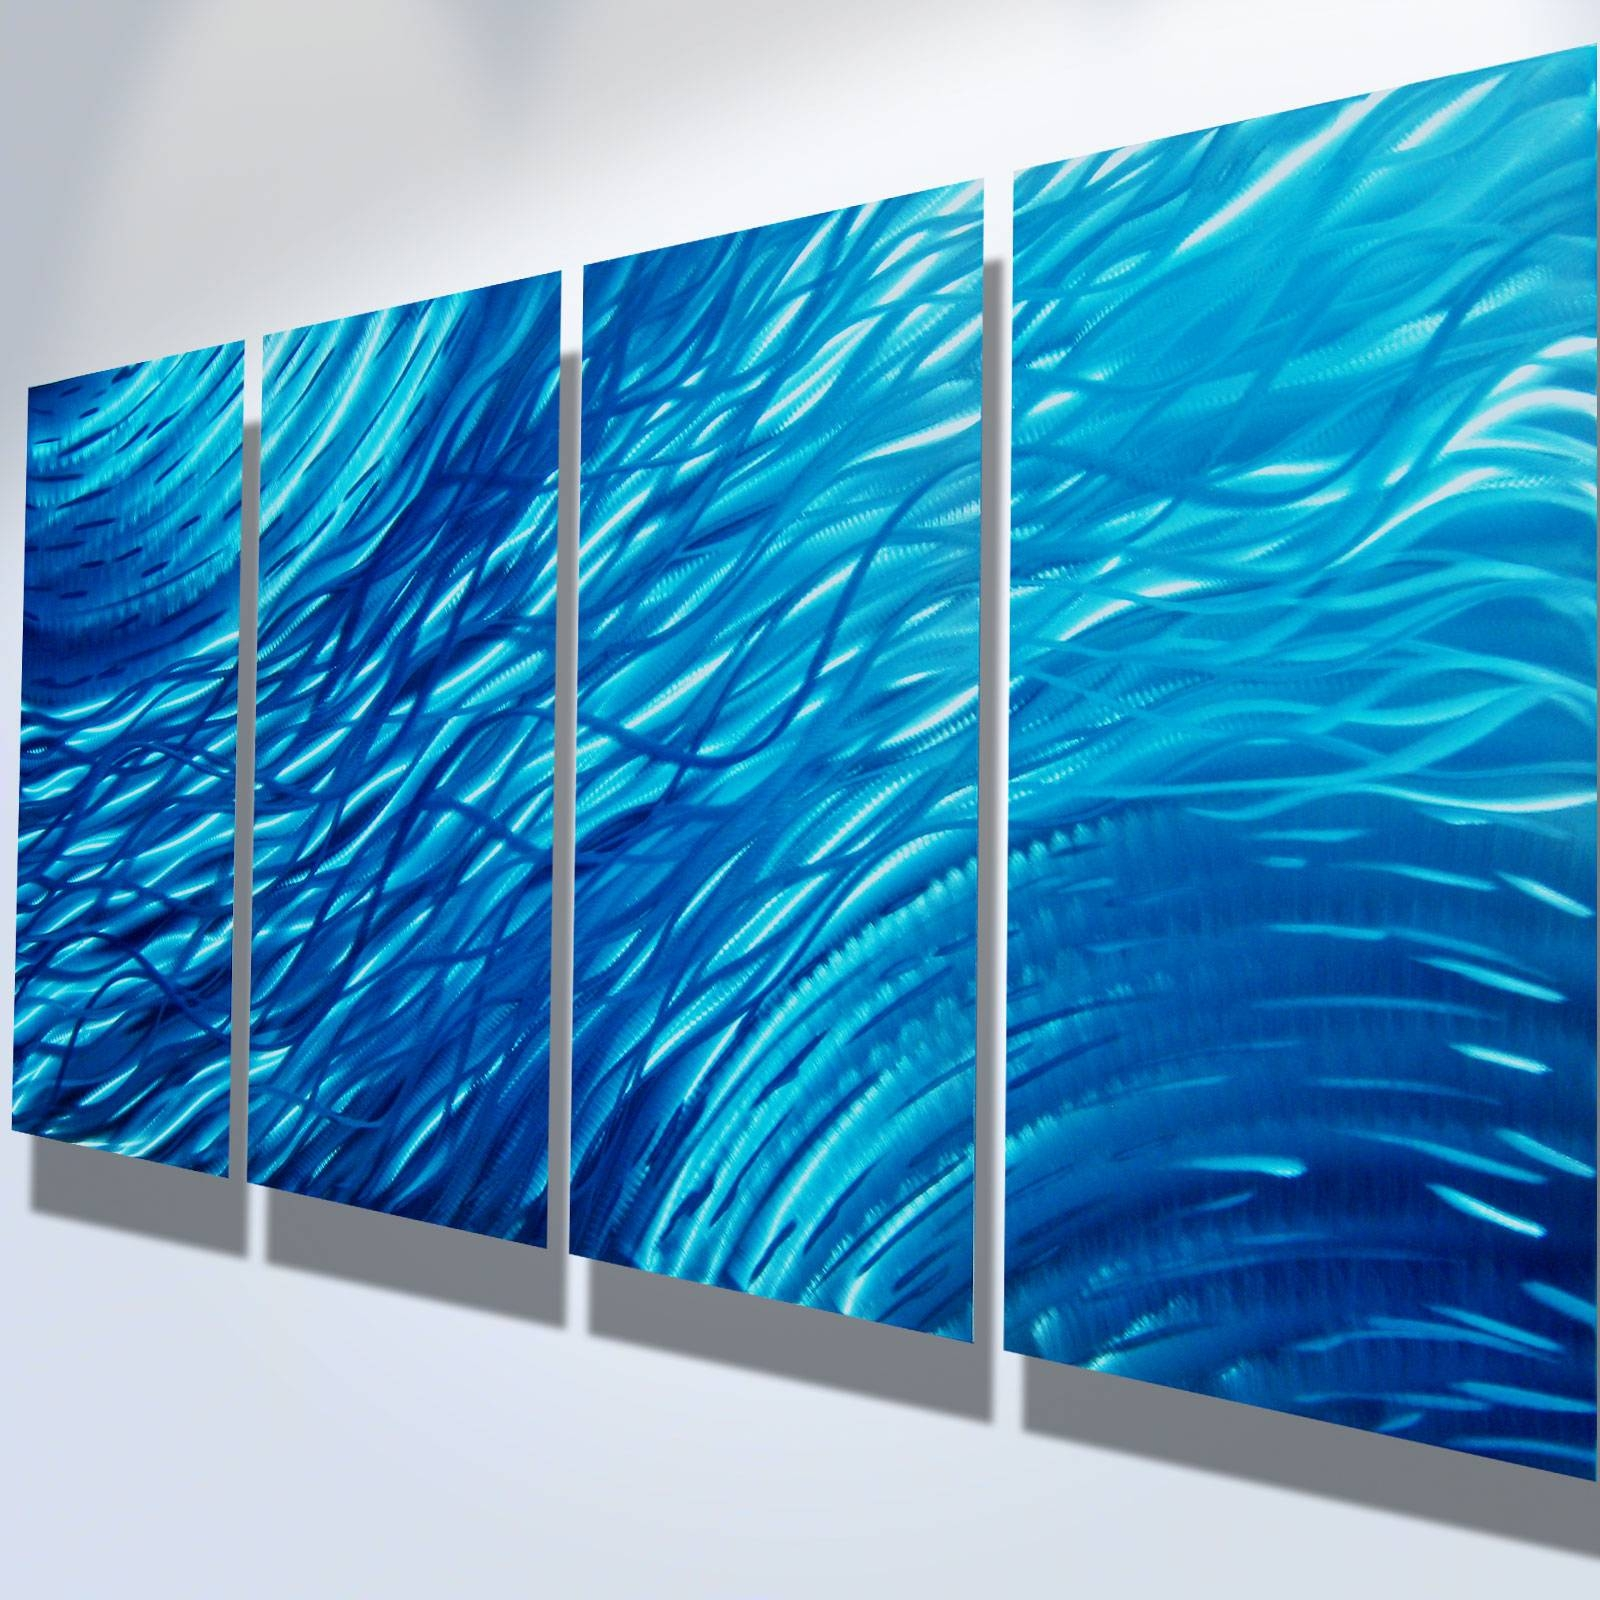 Ocean Metal Wall Art Abstract Contemporary Modern Decor Intended For Most Recently Released Blue Metal Wall Art (View 4 of 20)